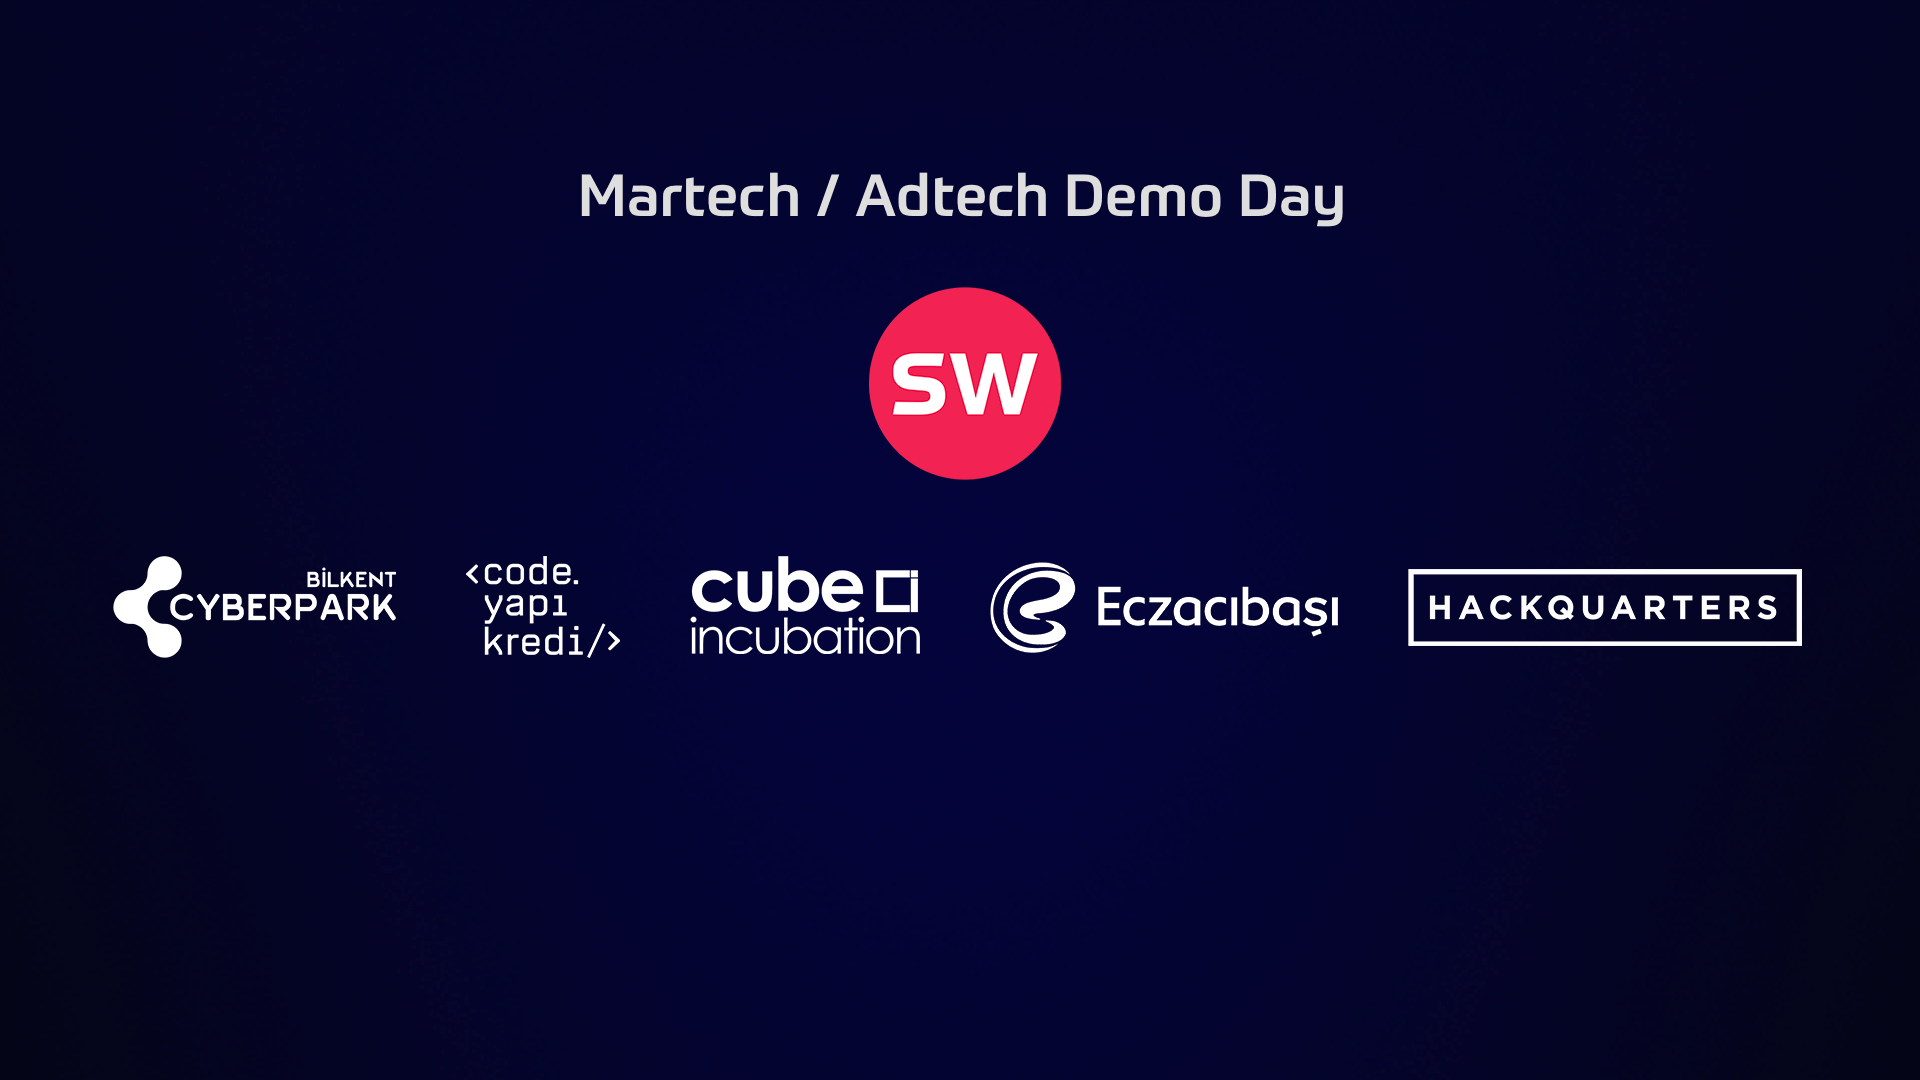 Startups Watch's Demo Day help on 28 July 2021, was about Martech and Adtech.